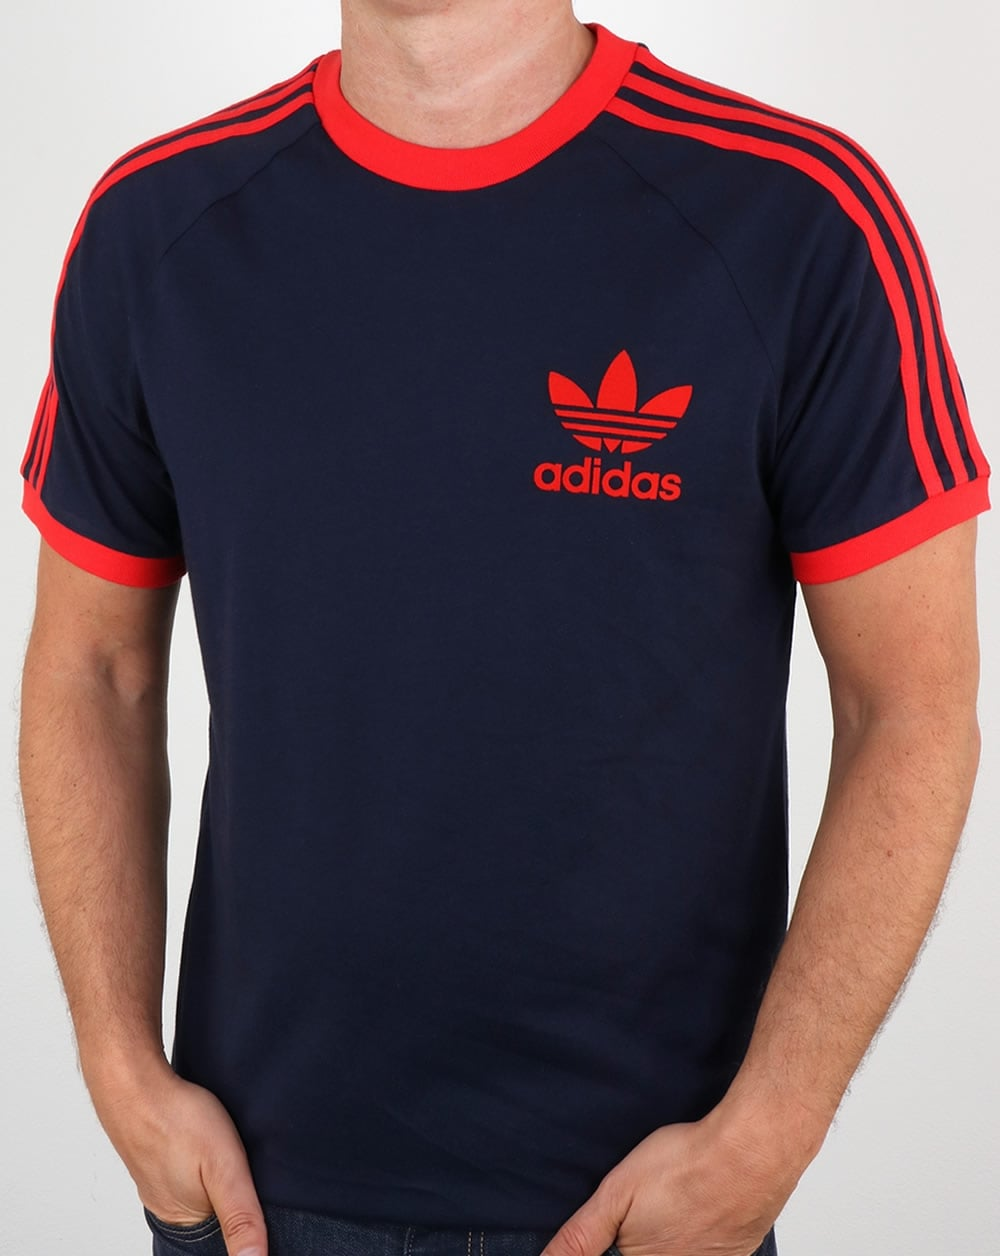 60009f4ddb1 adidas Originals Adidas Originals Retro 3 Stripes T Shirt Navy/Red